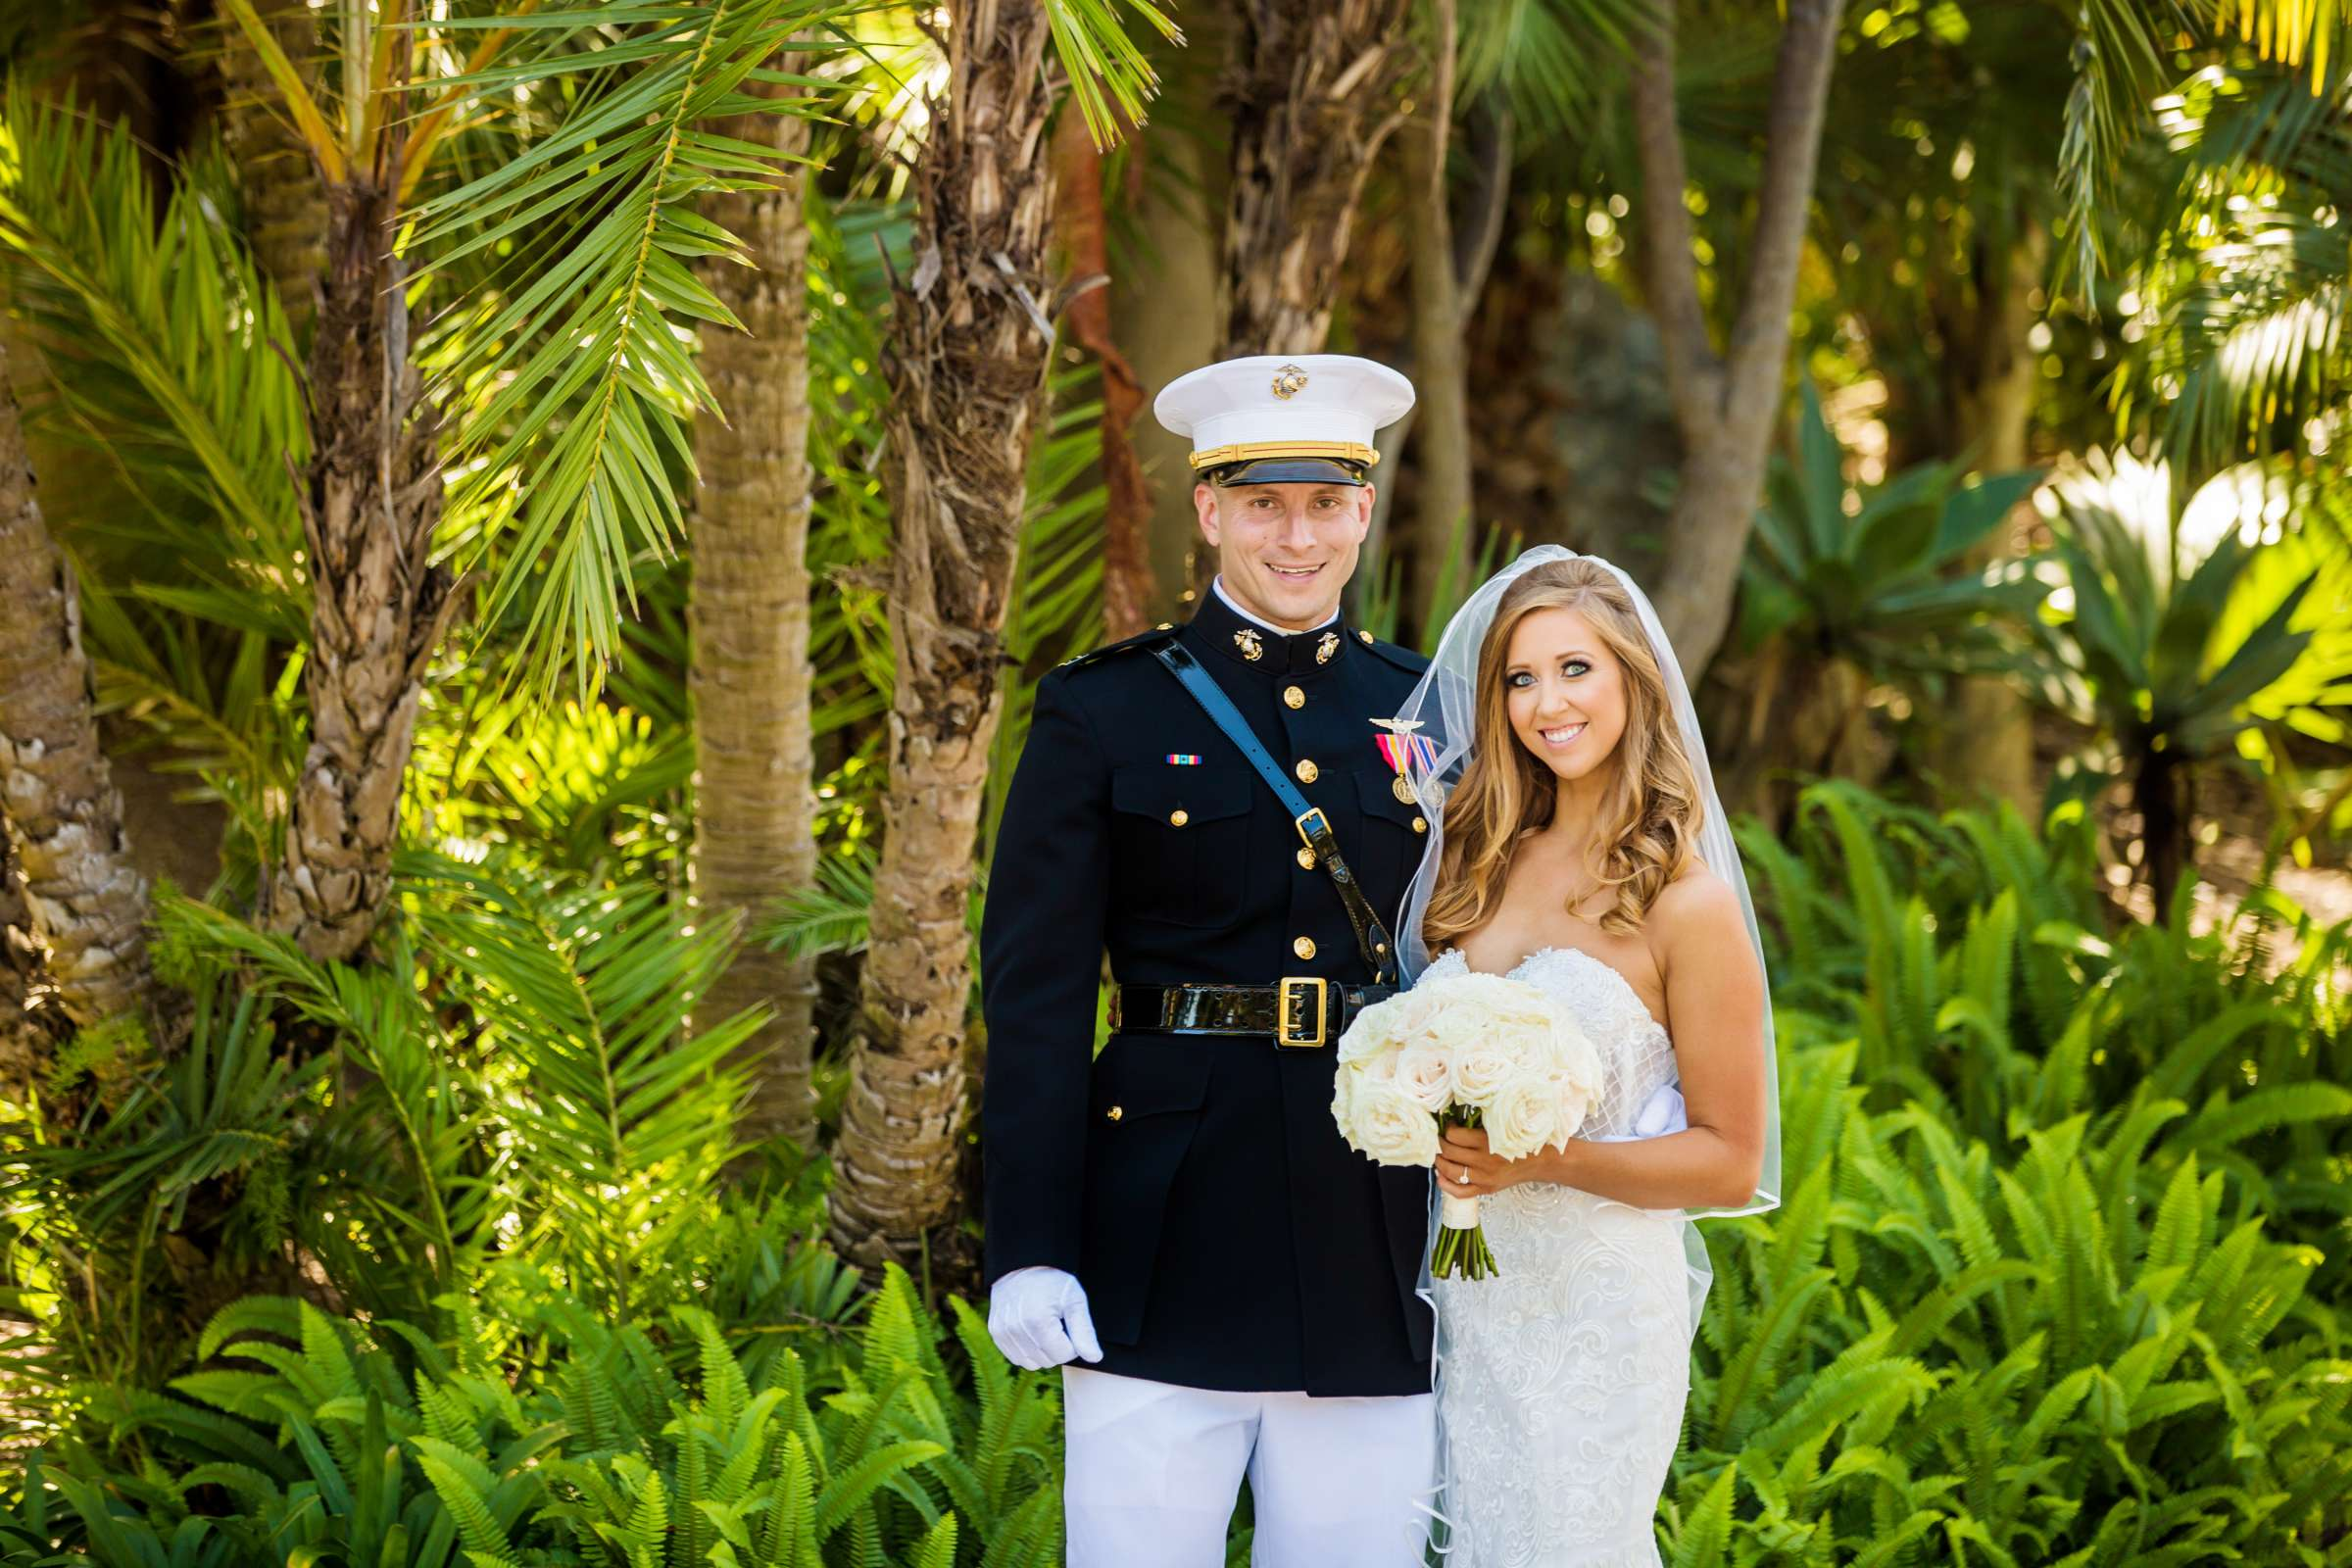 Paradise Point Wedding, Ashley and Ryan Wedding Photo #567192 by True Photography